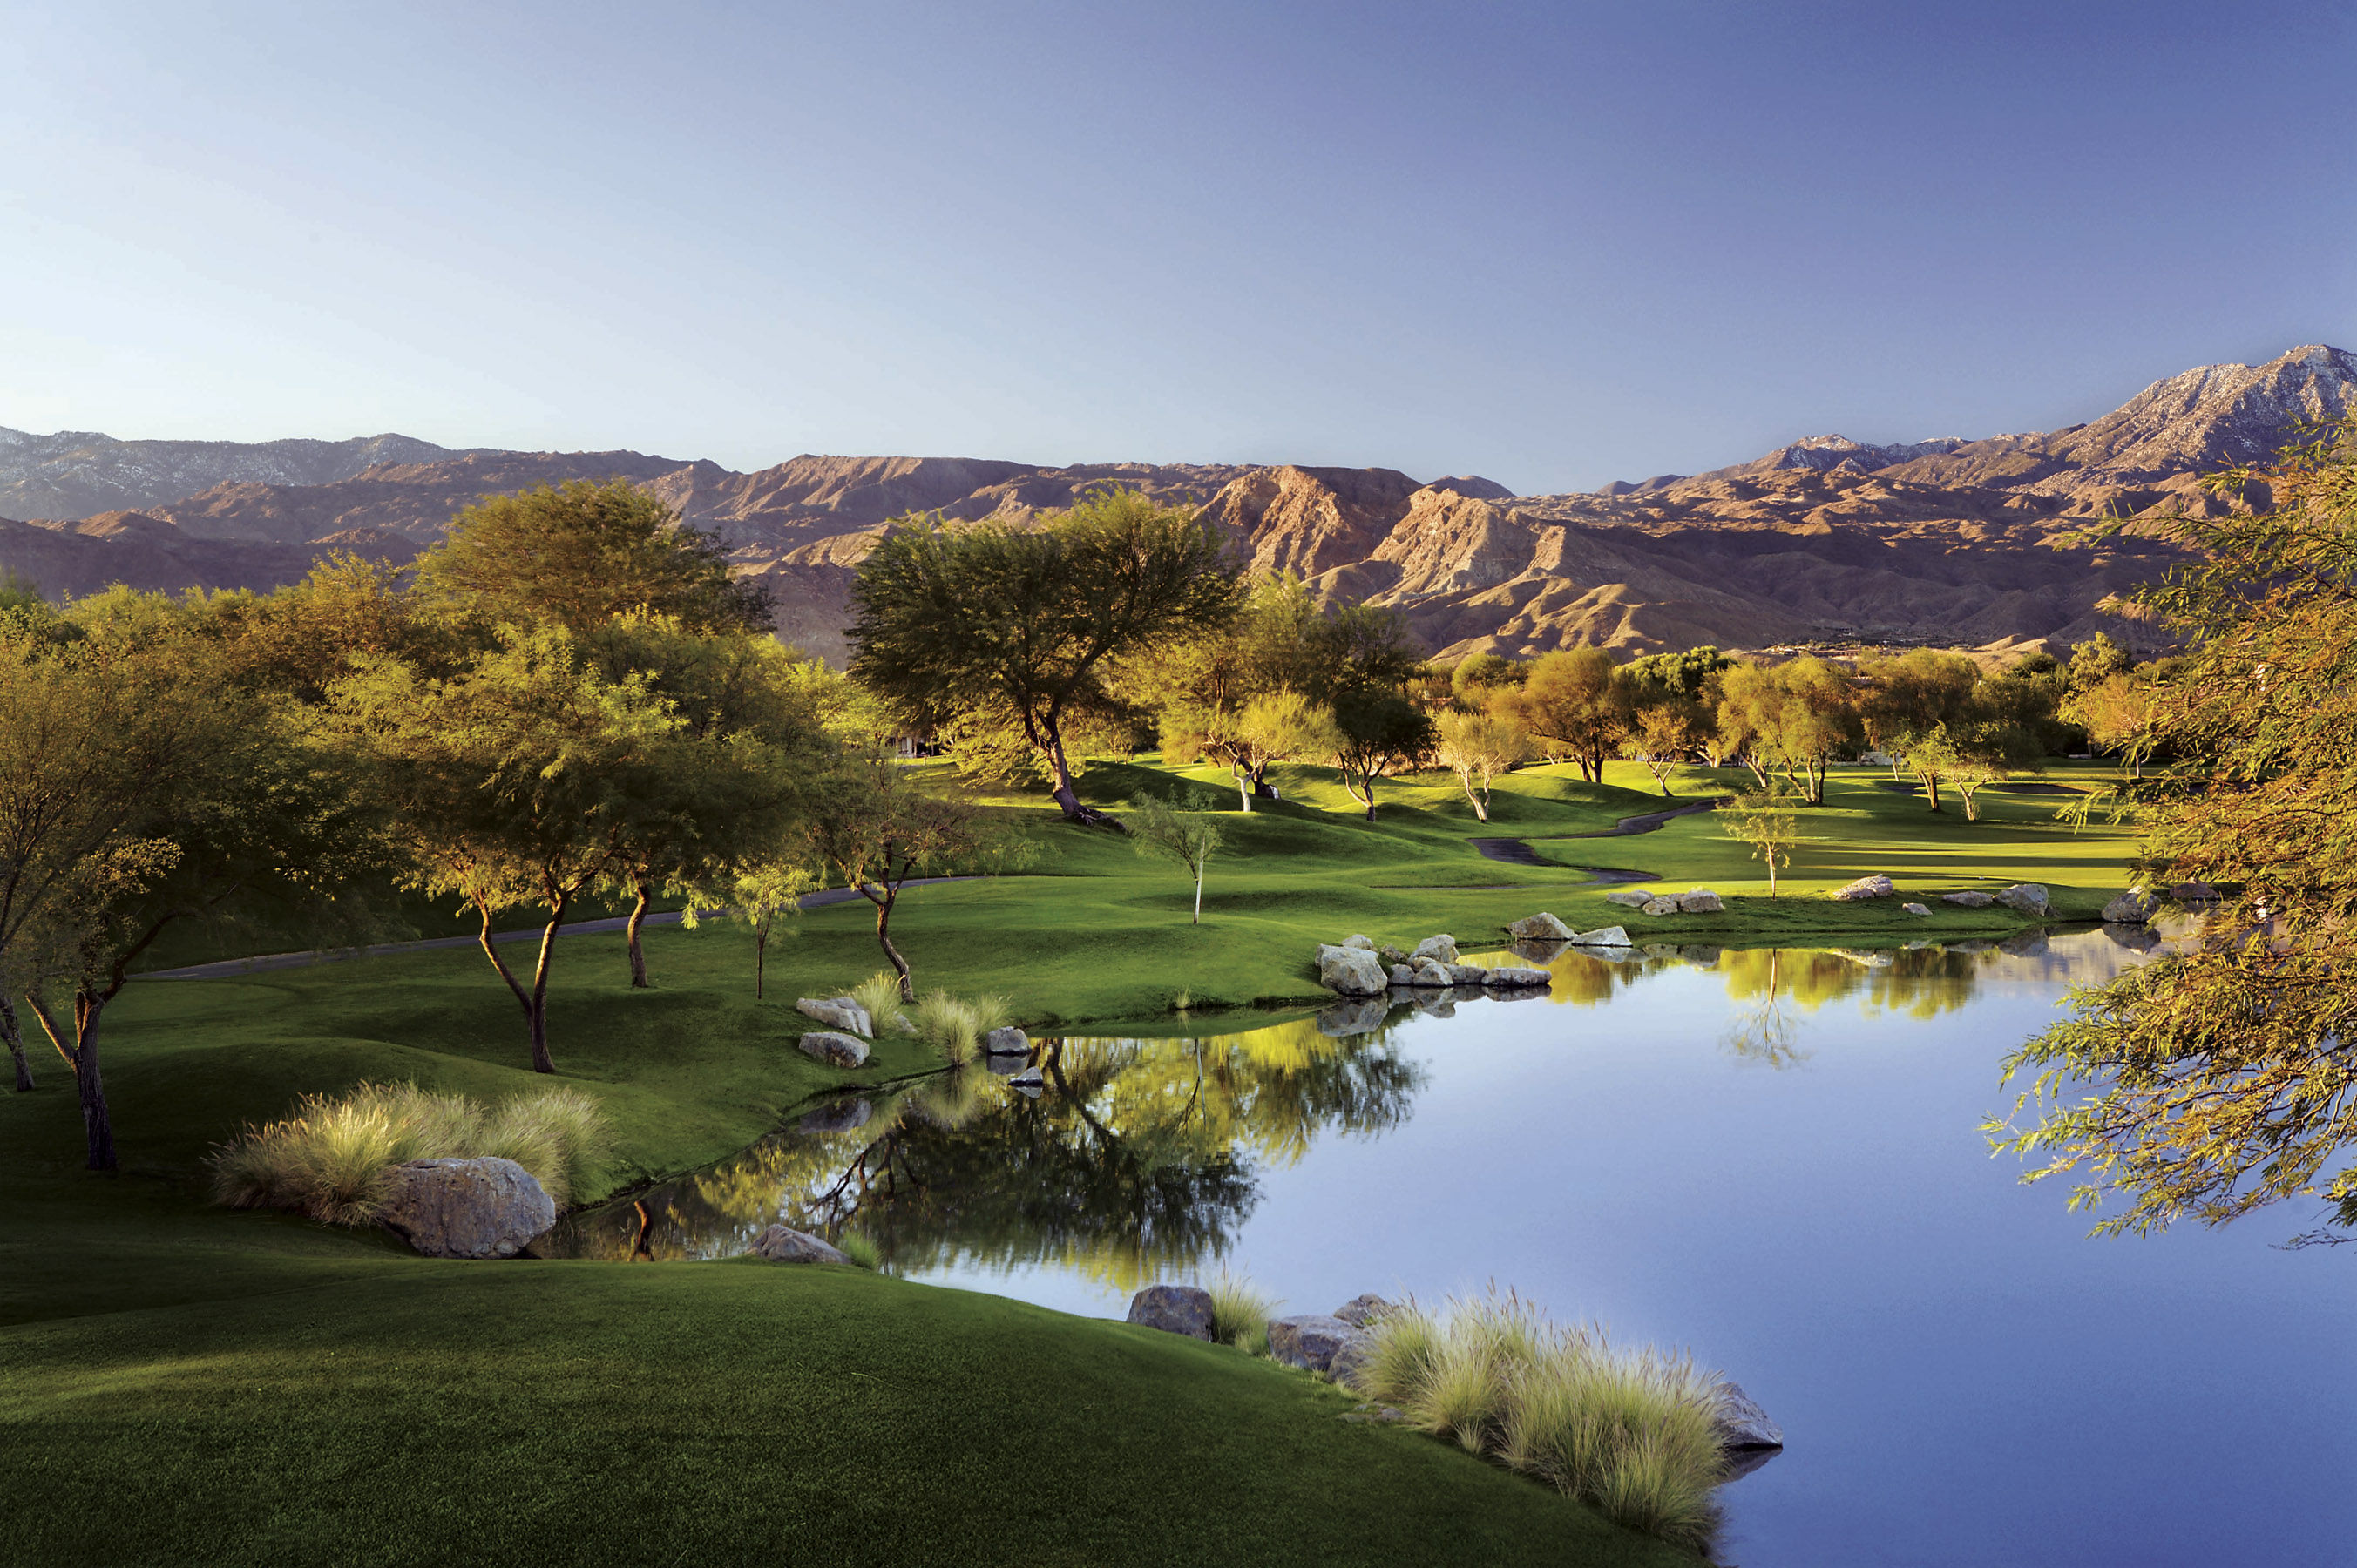 Westin mission hills golf resort and spa cover picture